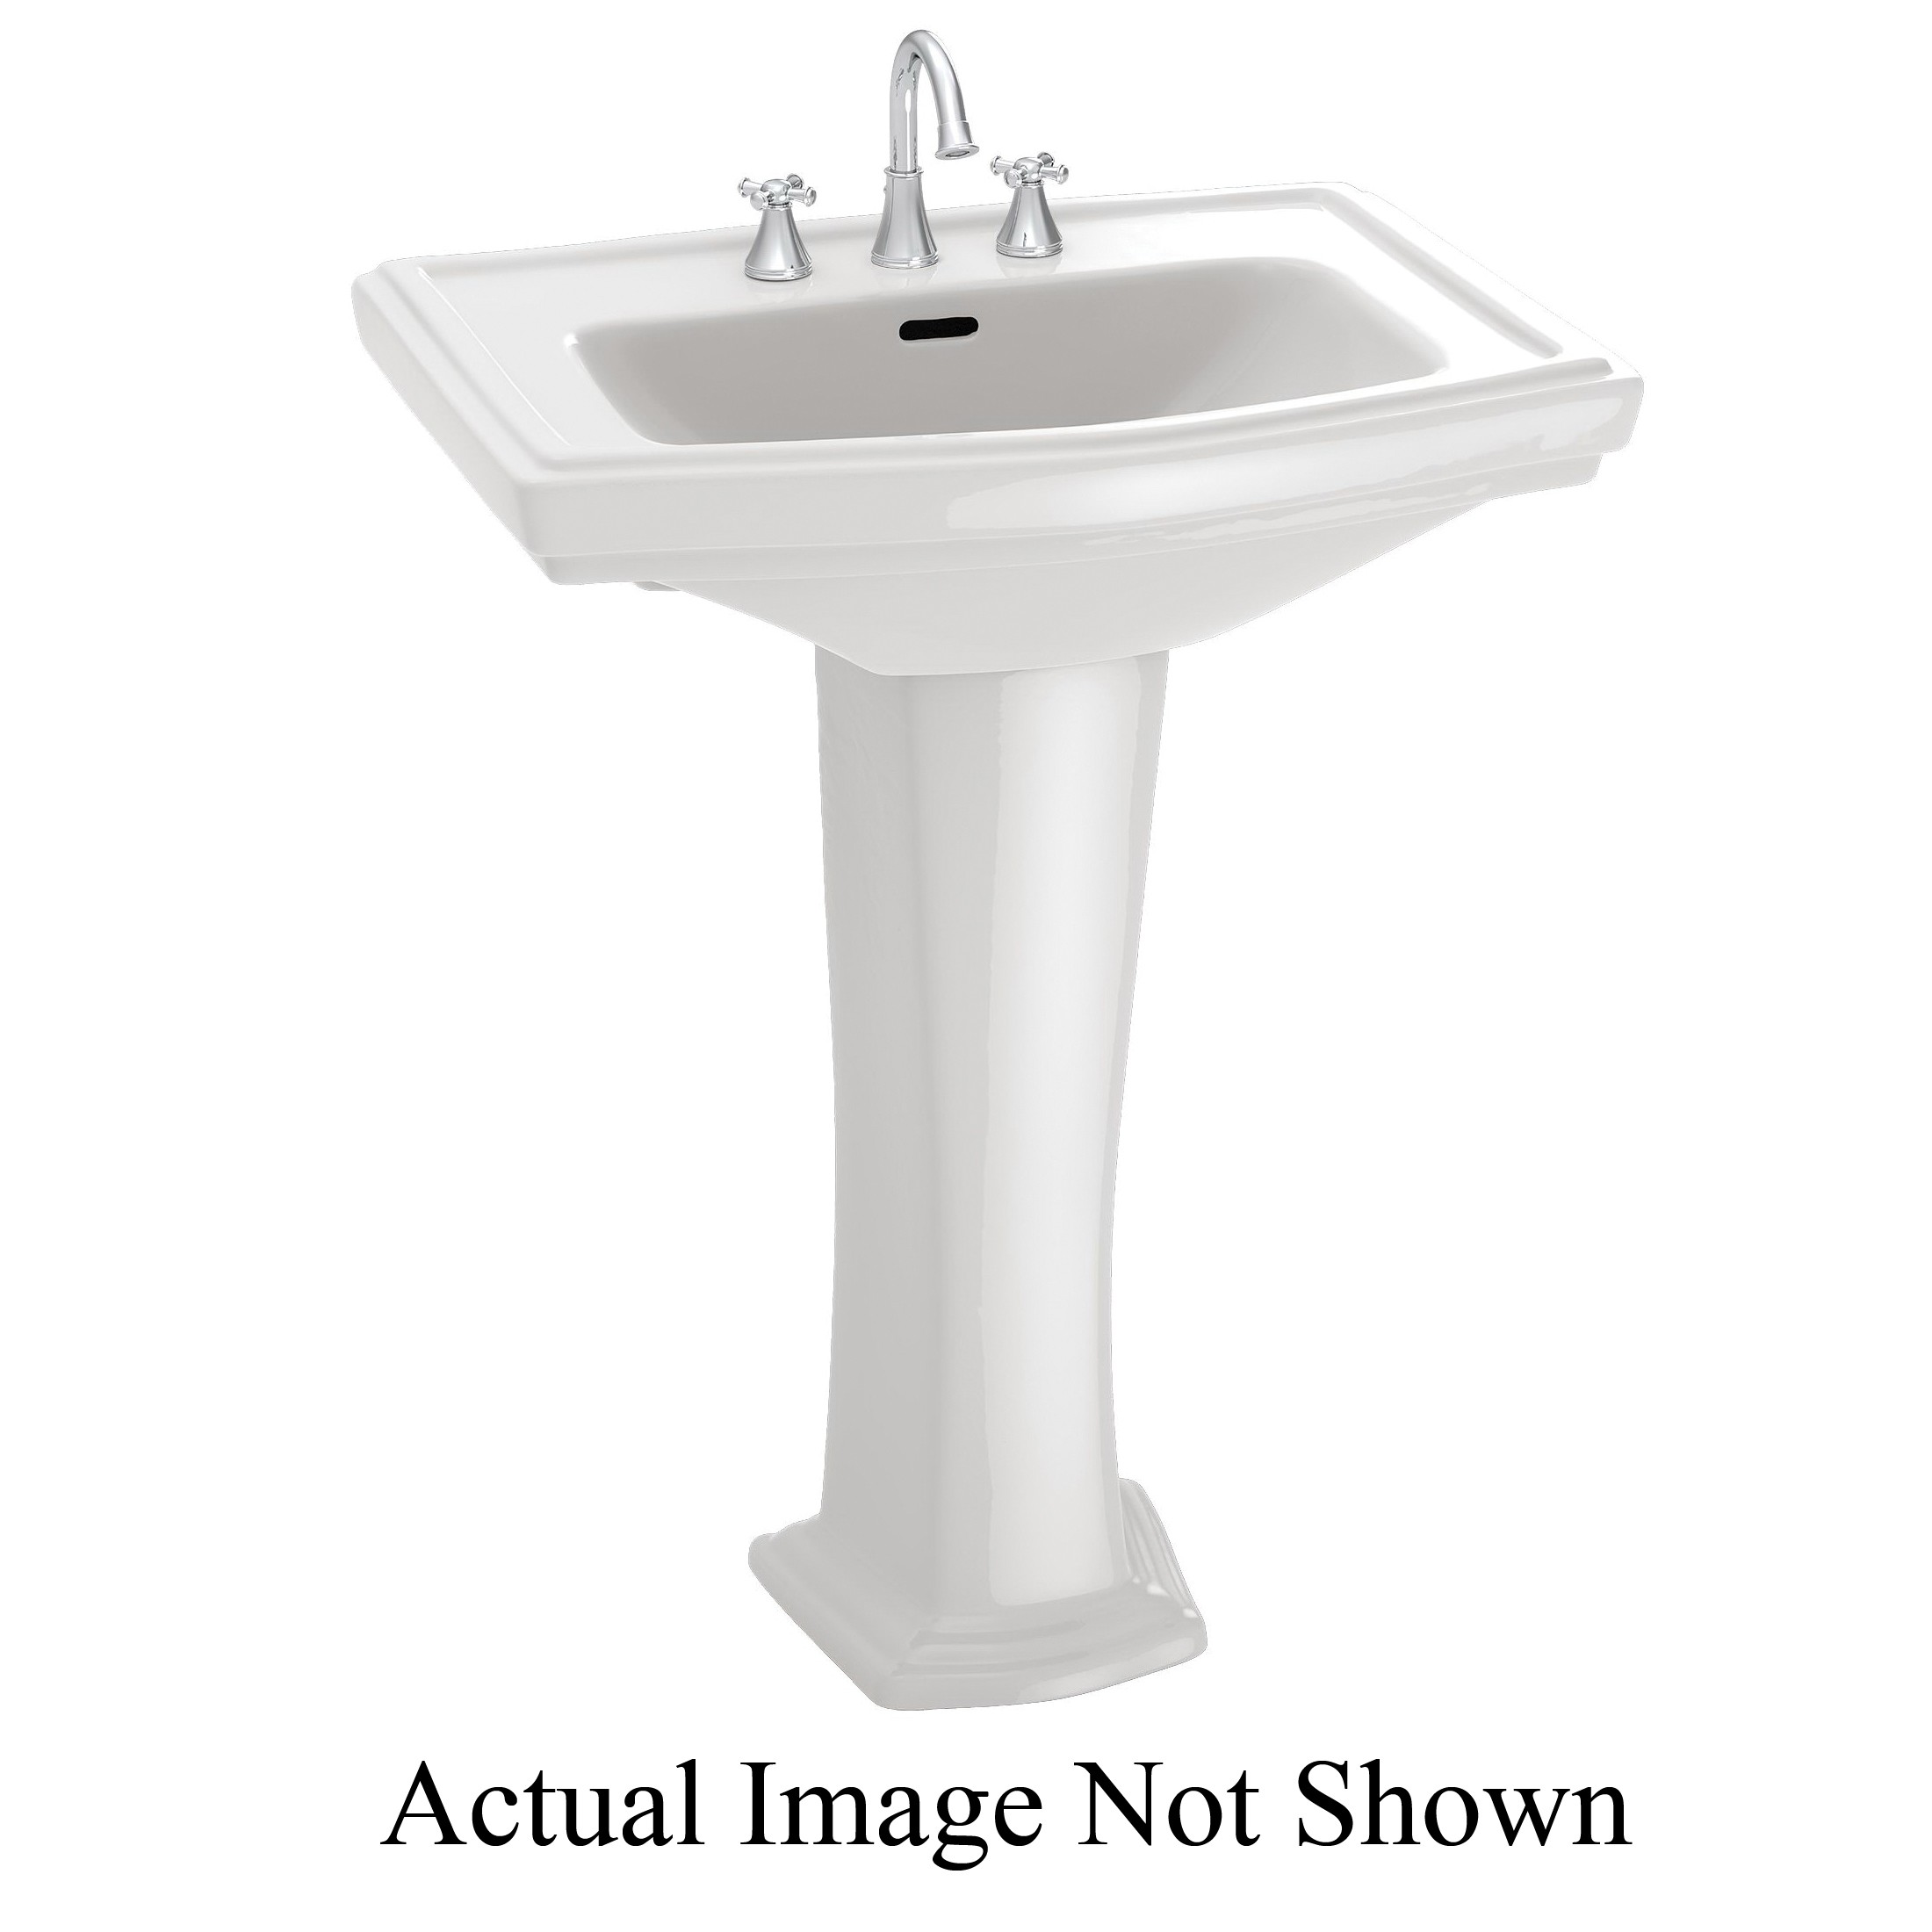 Consolidated Supply Co. | Toto® Pedestal, Vitreous China, White